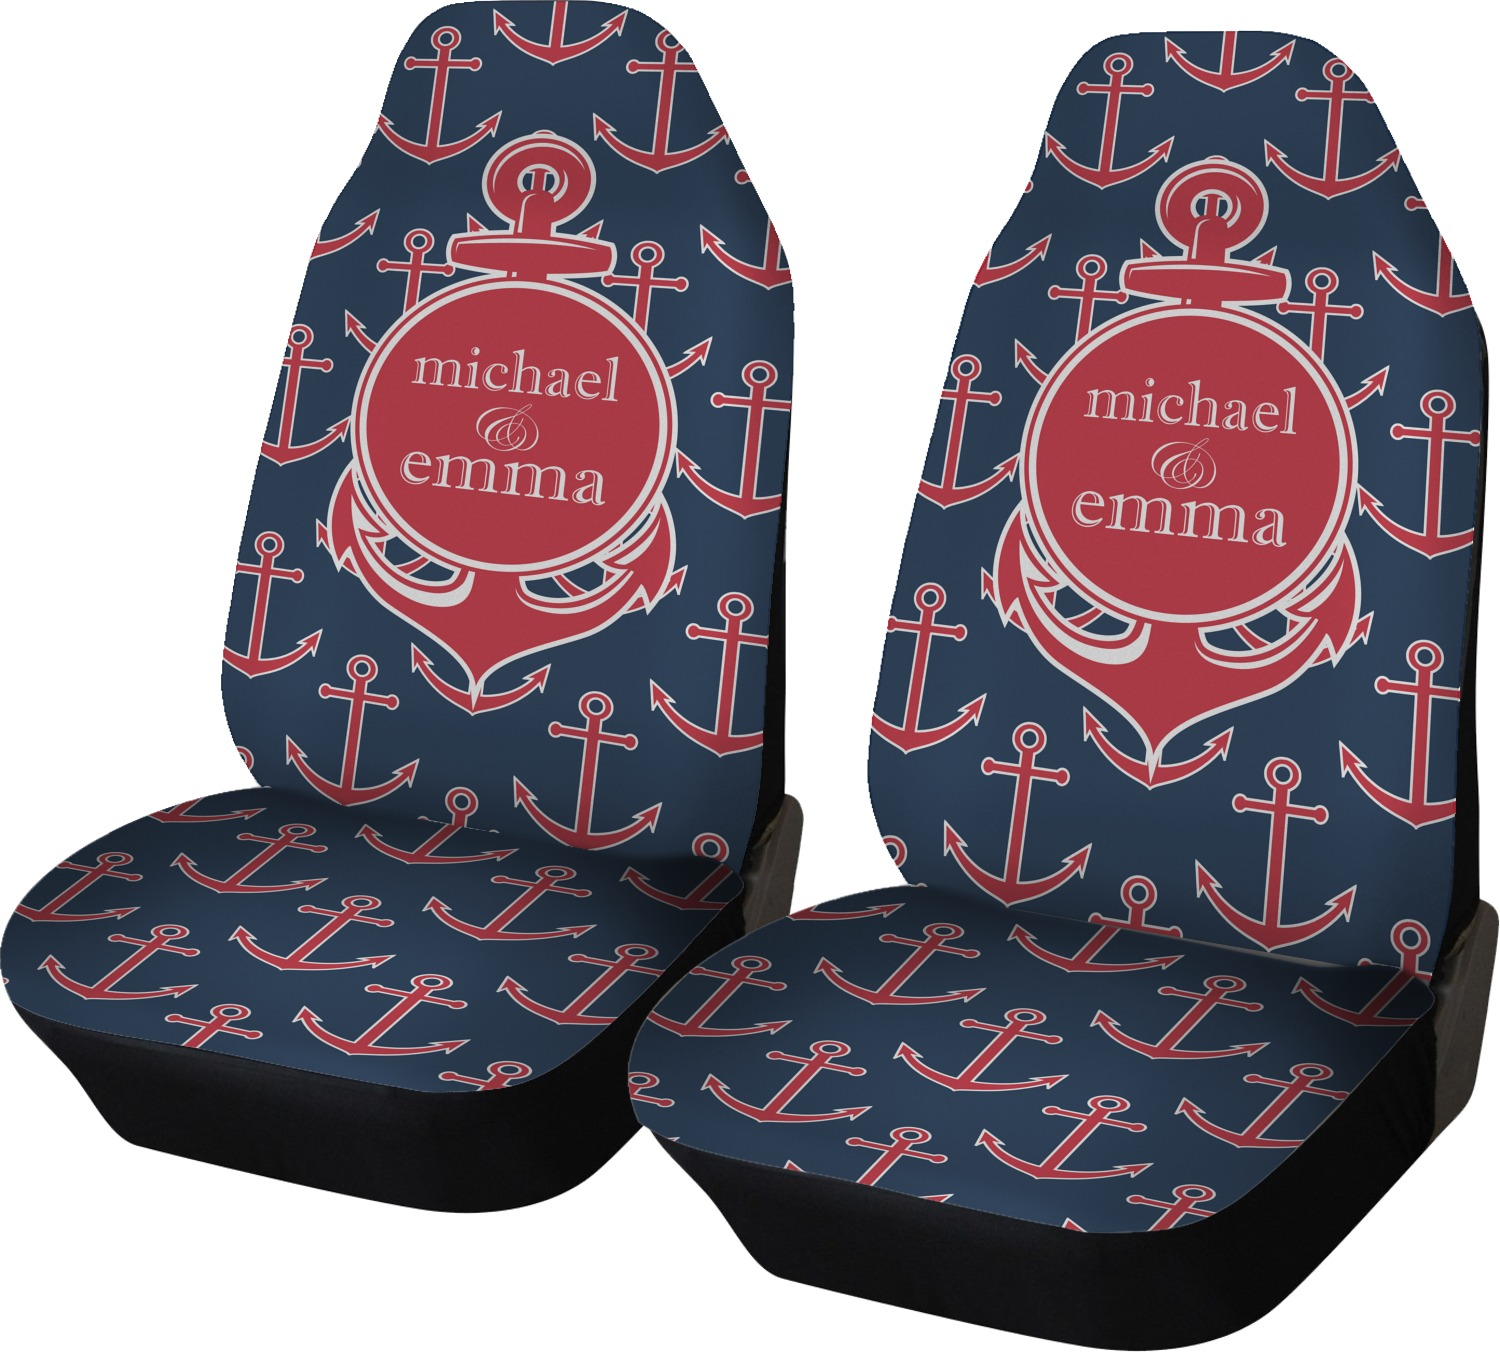 Custom Car Seat Covers For Kids